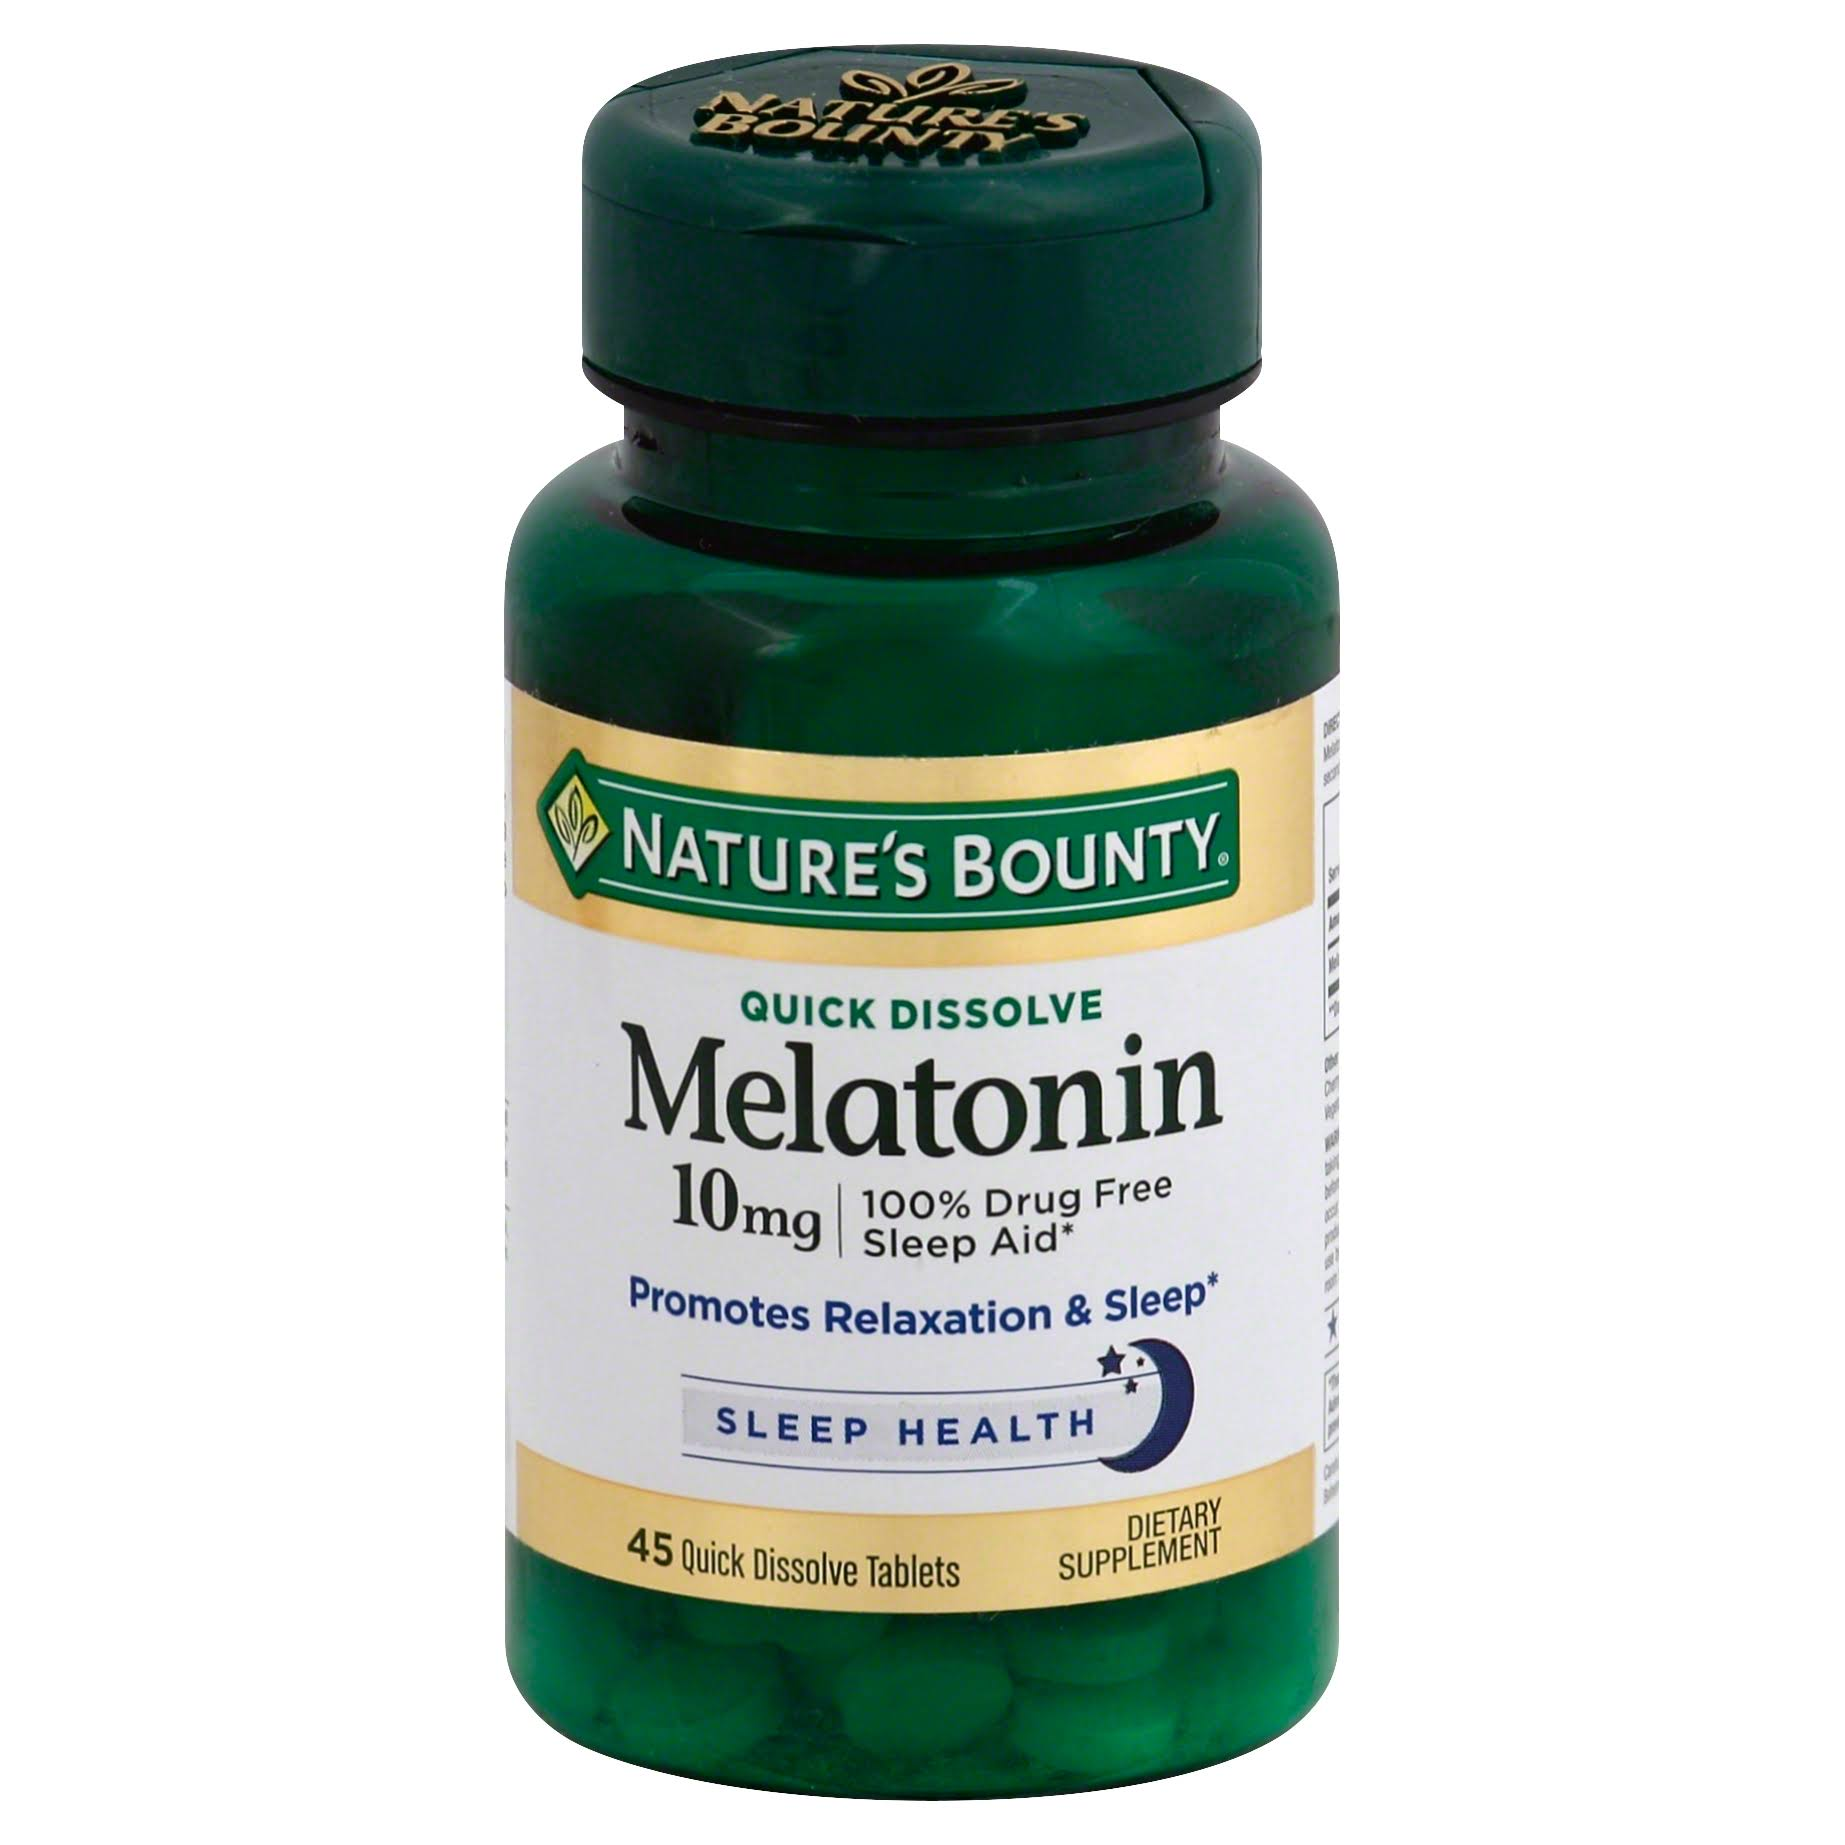 Nature's Bounty Quick Dissolve Melatonin 10mg Tablets